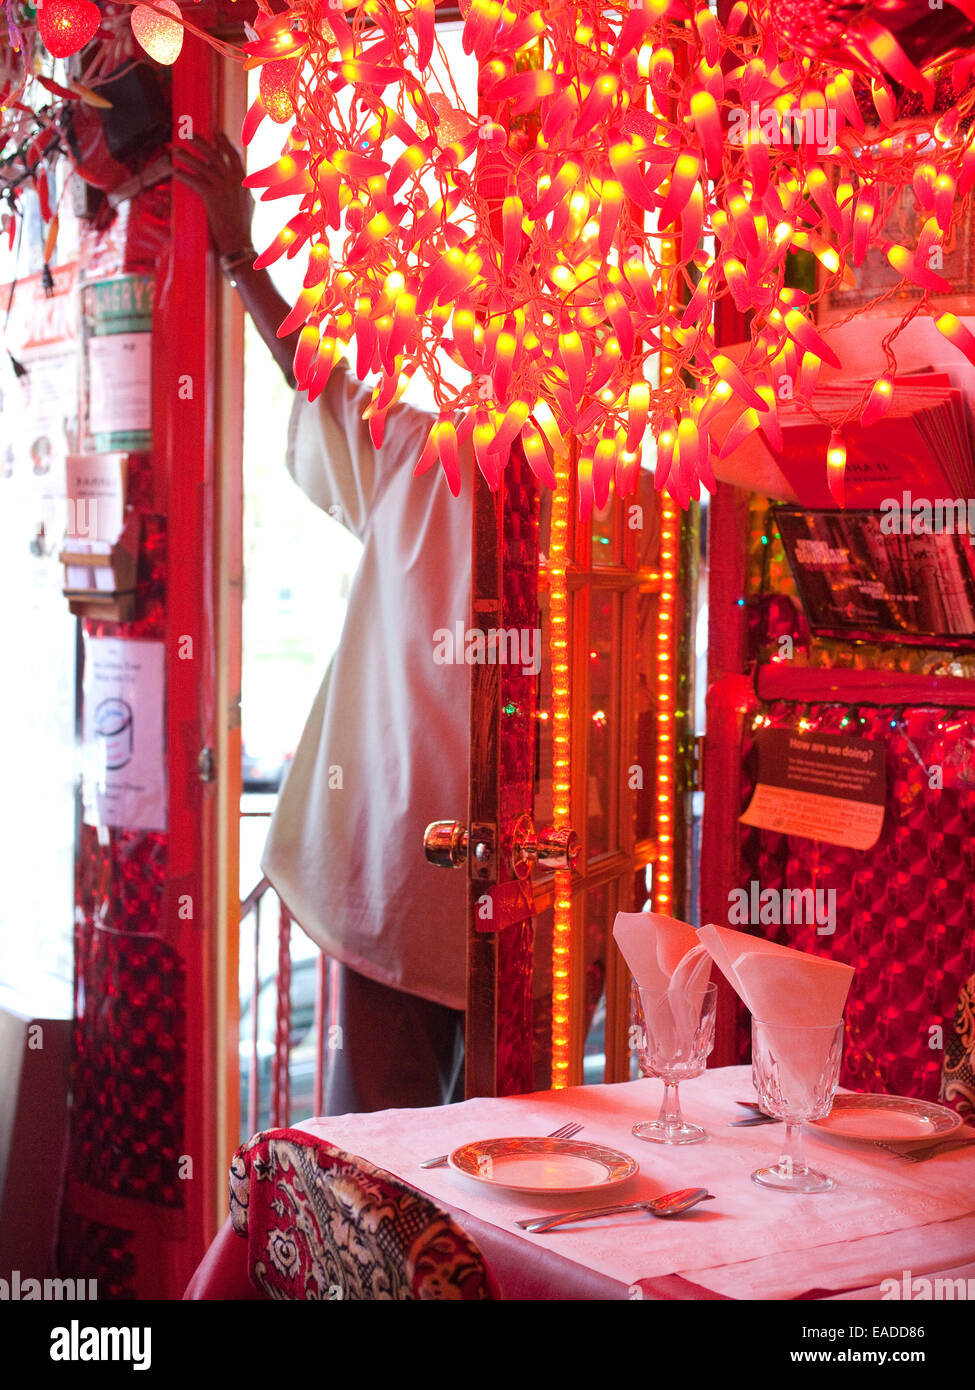 Interior of Indian Restaurant - Stock Image